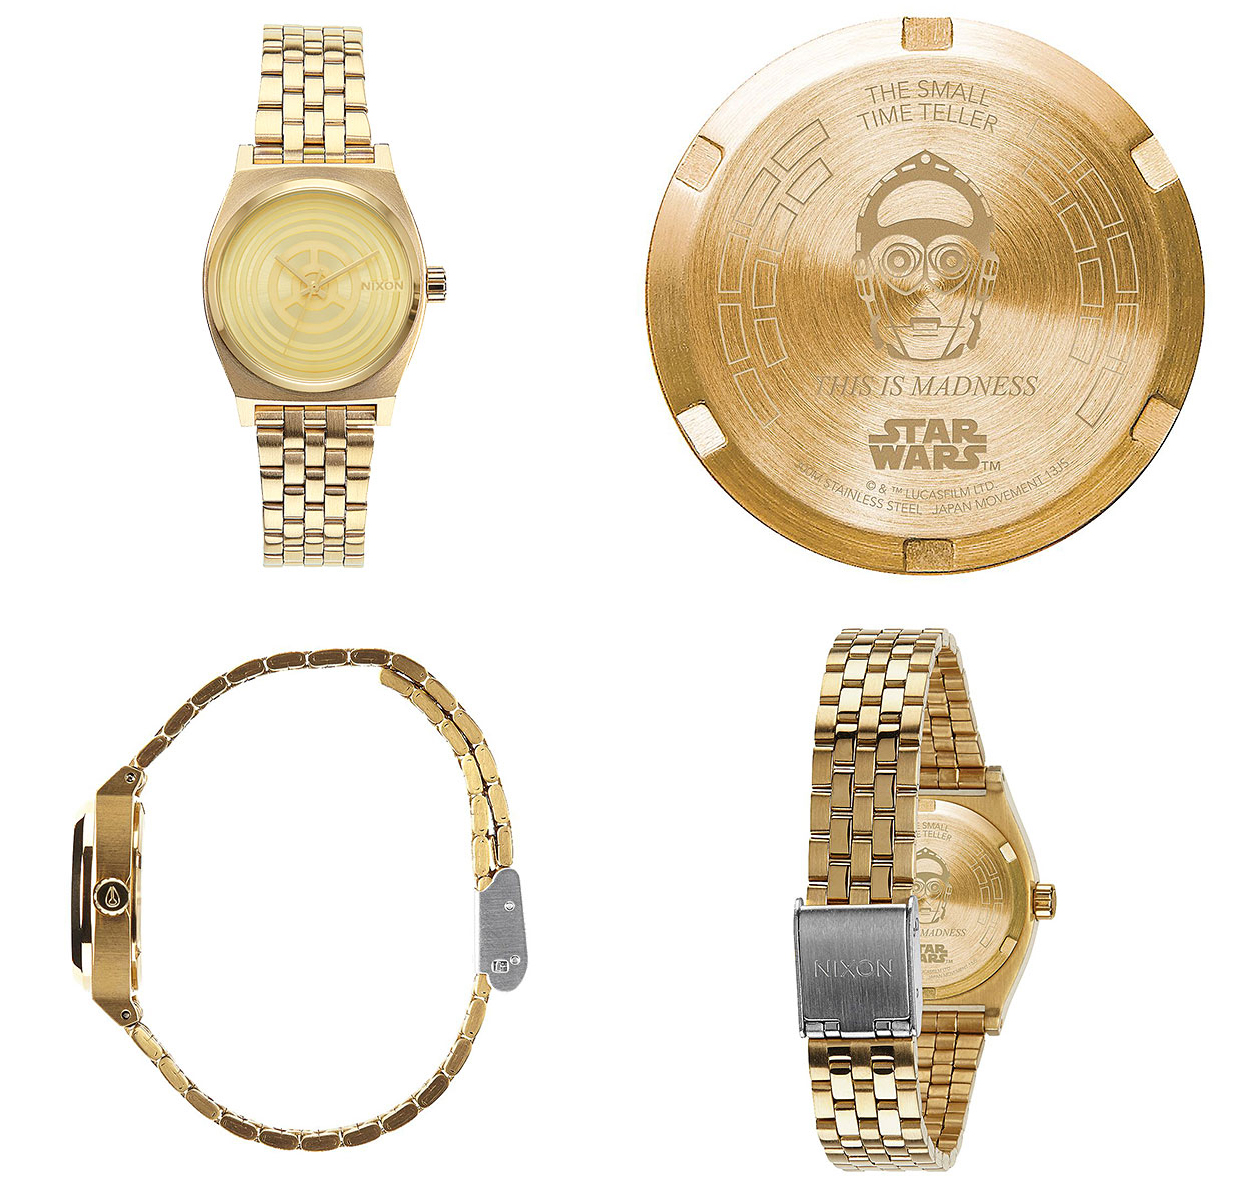 best star wars gift ideas for ladies 2016 Nixon Small Time Teller SW Watch - C-3PO Gold